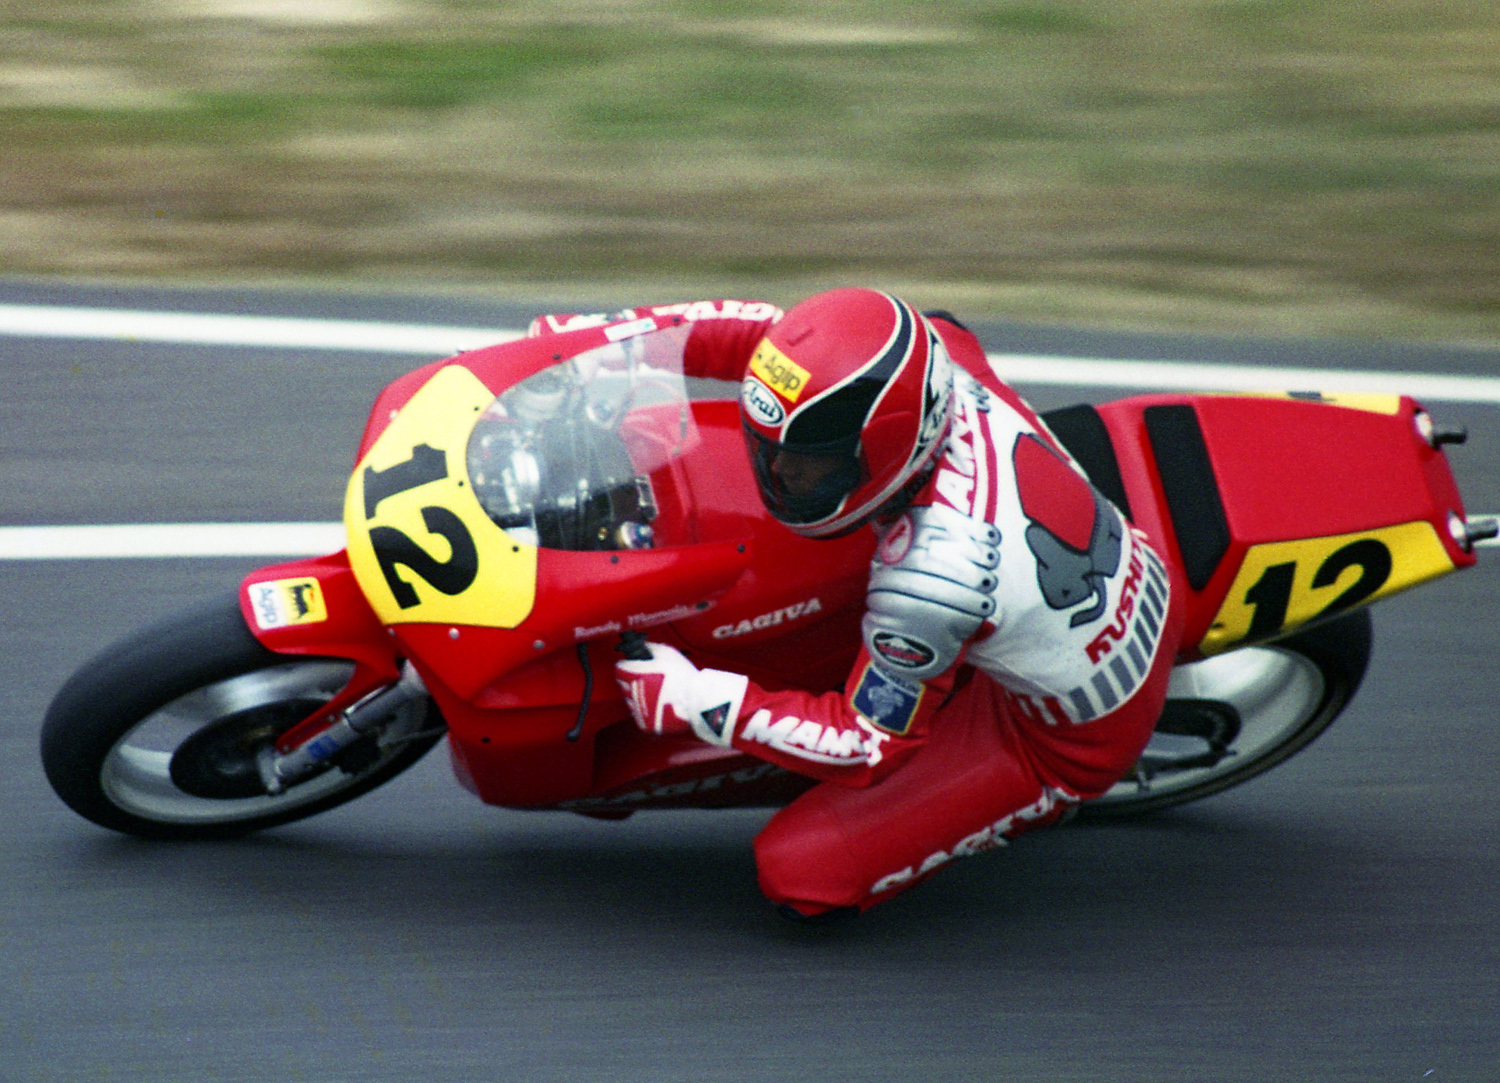 Cagiva T4 500 R Racing images #66917